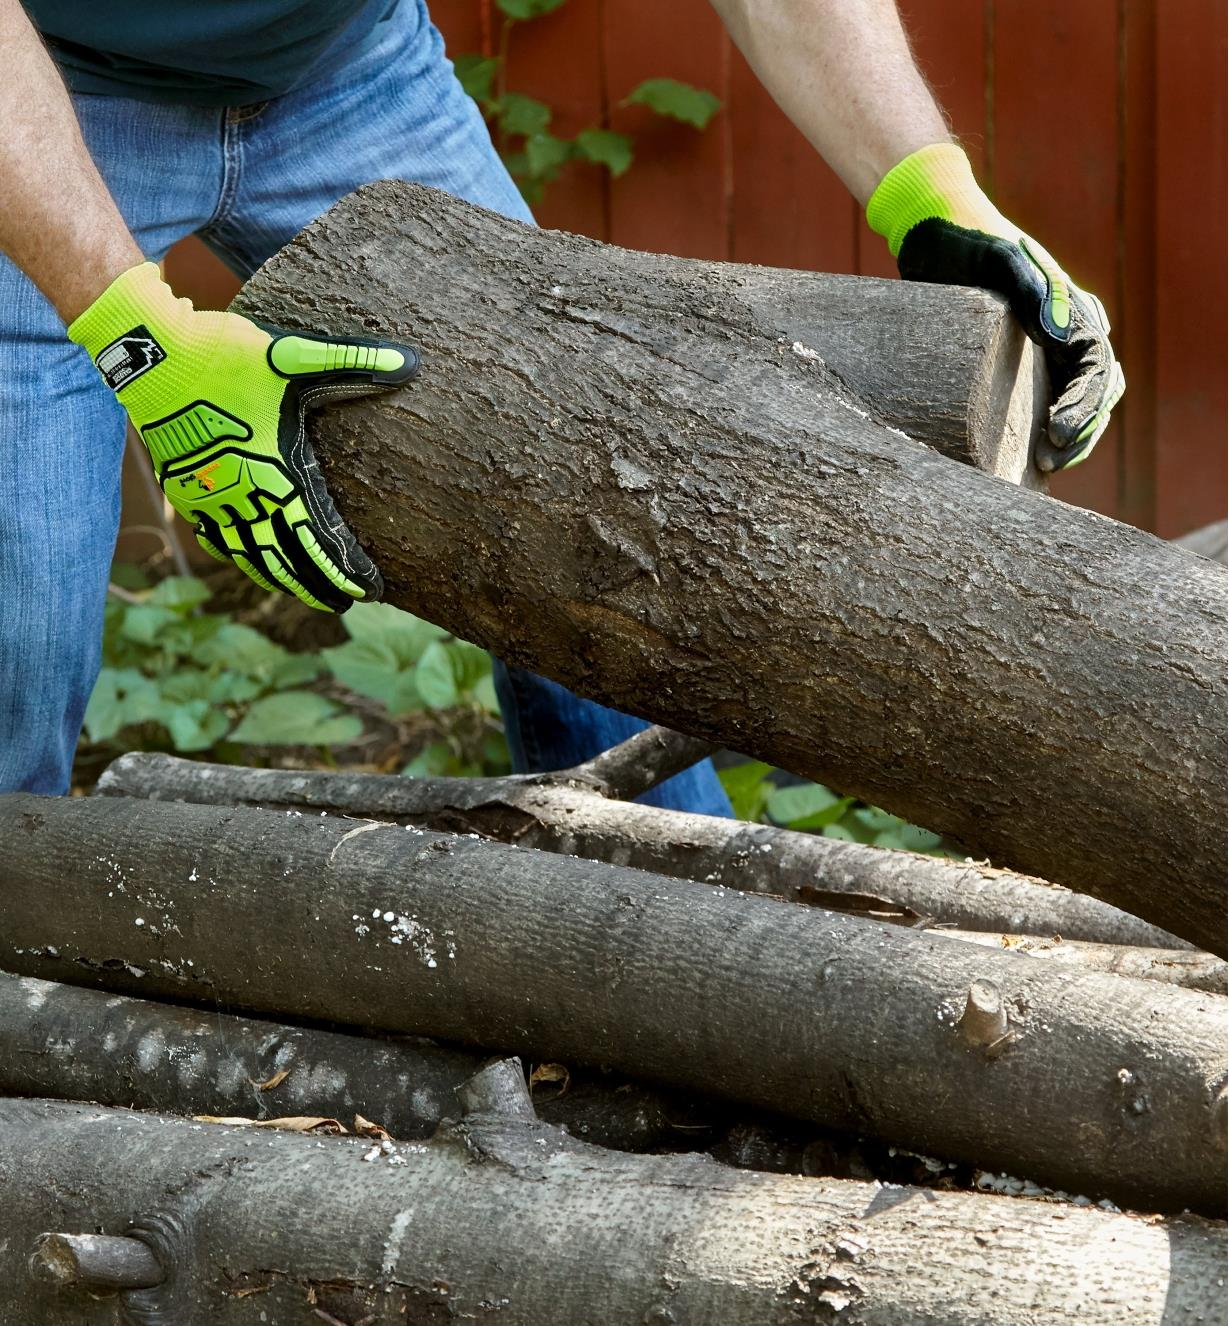 A homeowner wears impact-resistant gloves while piling hardwood logs to be processed for firewood